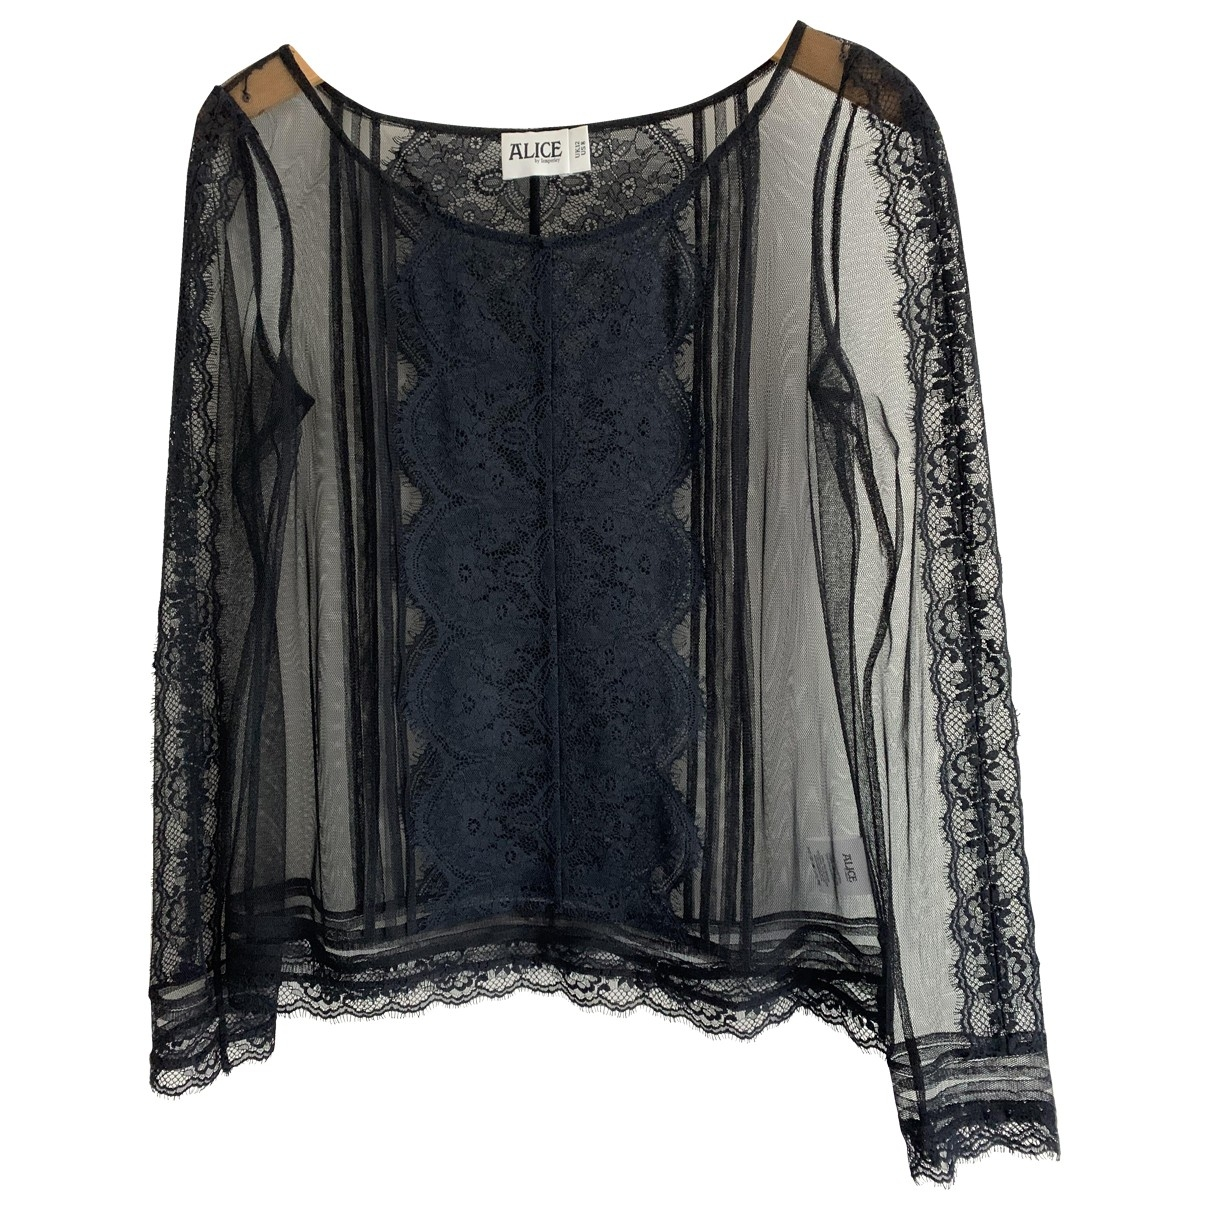 Alice By Temperley \N Black Lace  top for Women 12 UK